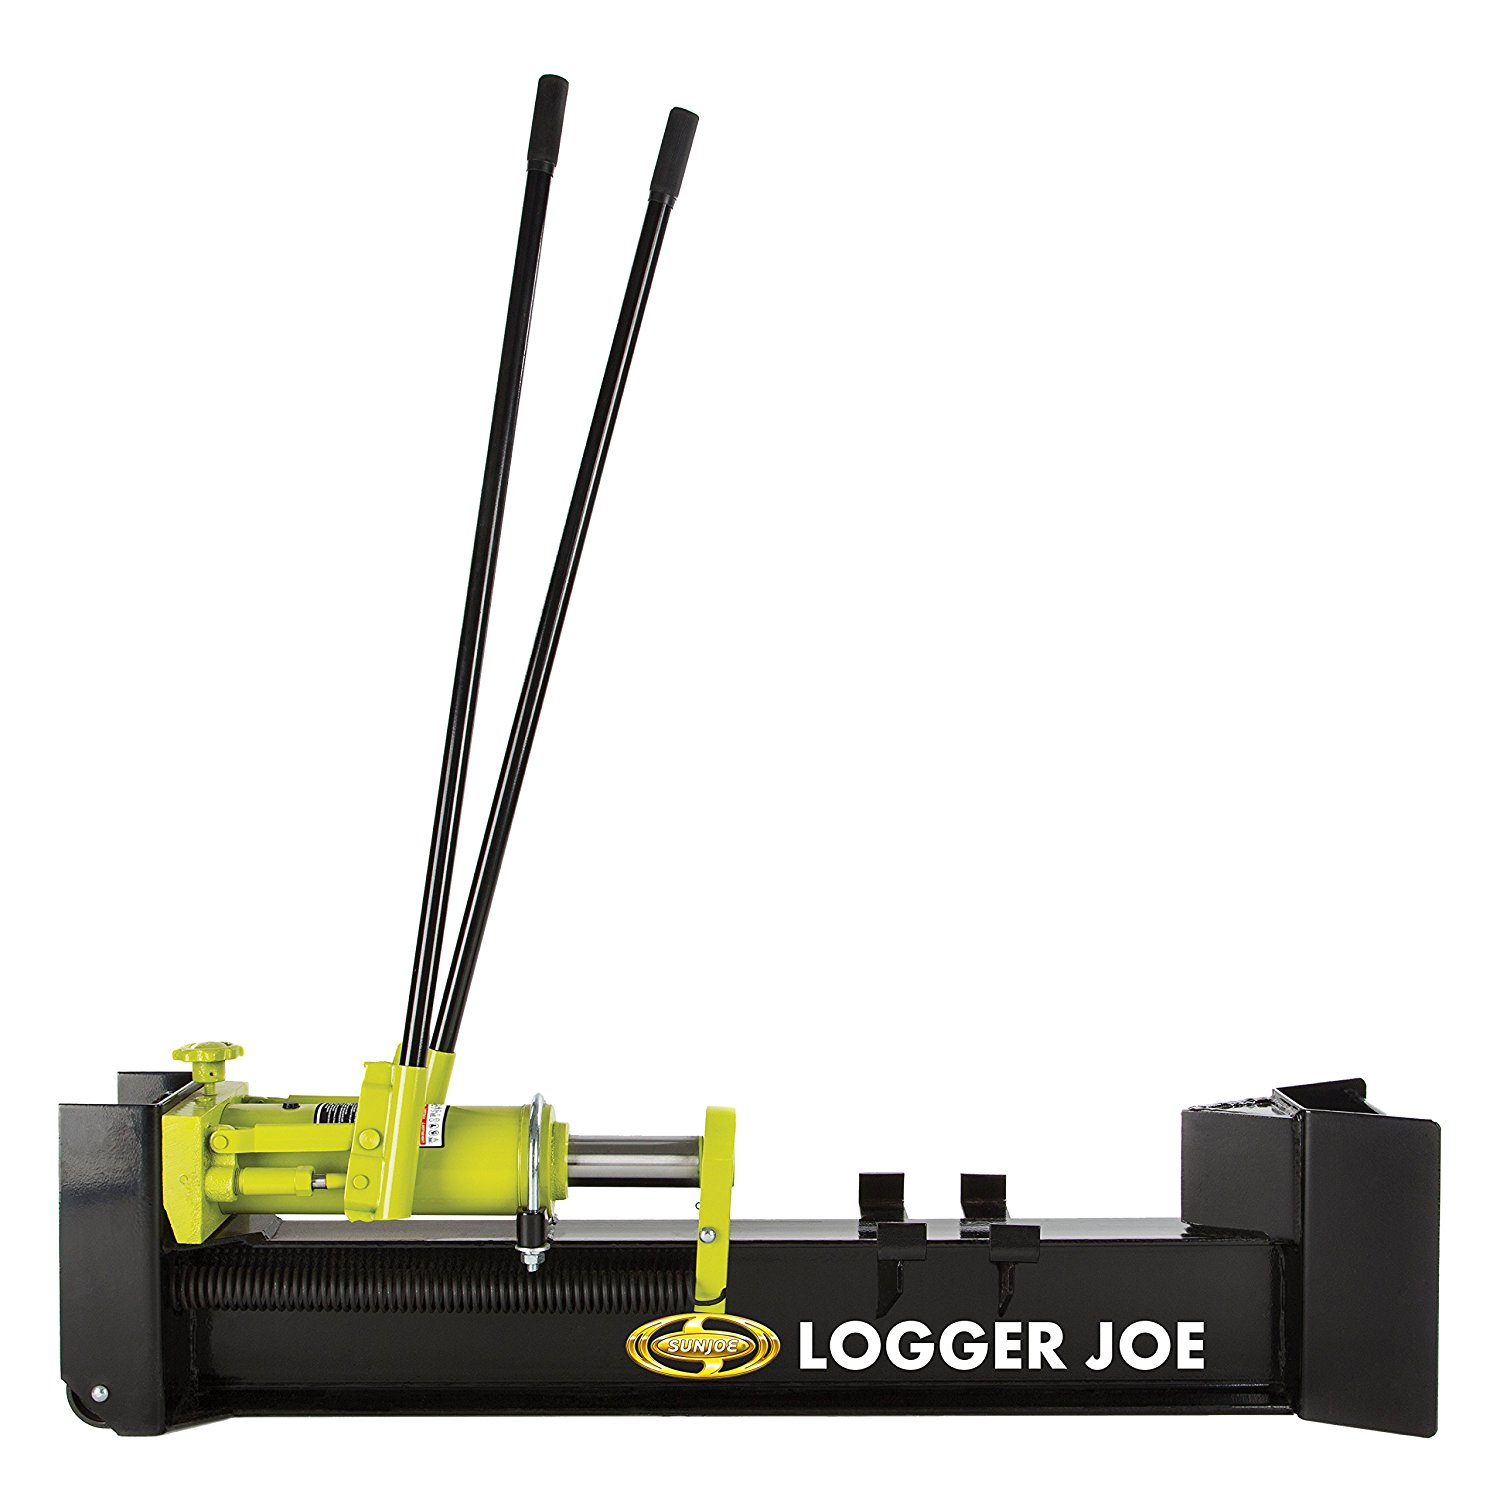 Best Log Splitter - Sun Joe LJ10M Logger Joe | Manual Log Splitter